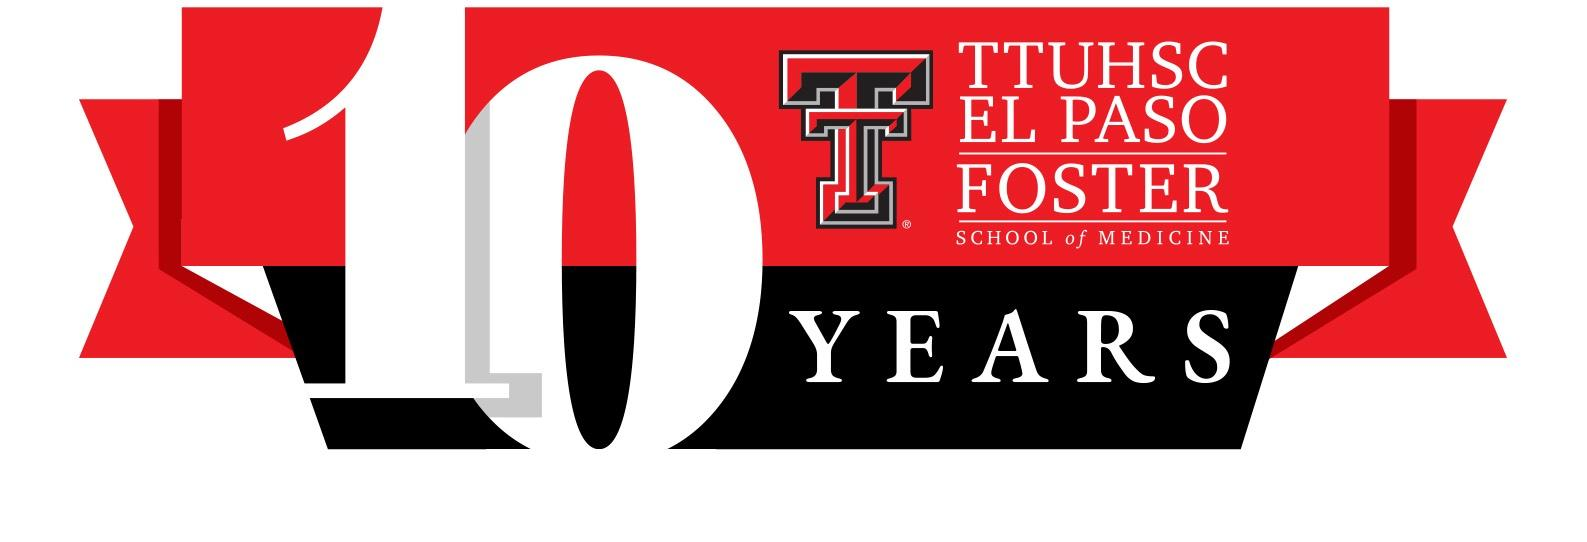 TTUHSC El Paso Surpasses Fundraising Goal of $250,000 For Medical Student Scholarships